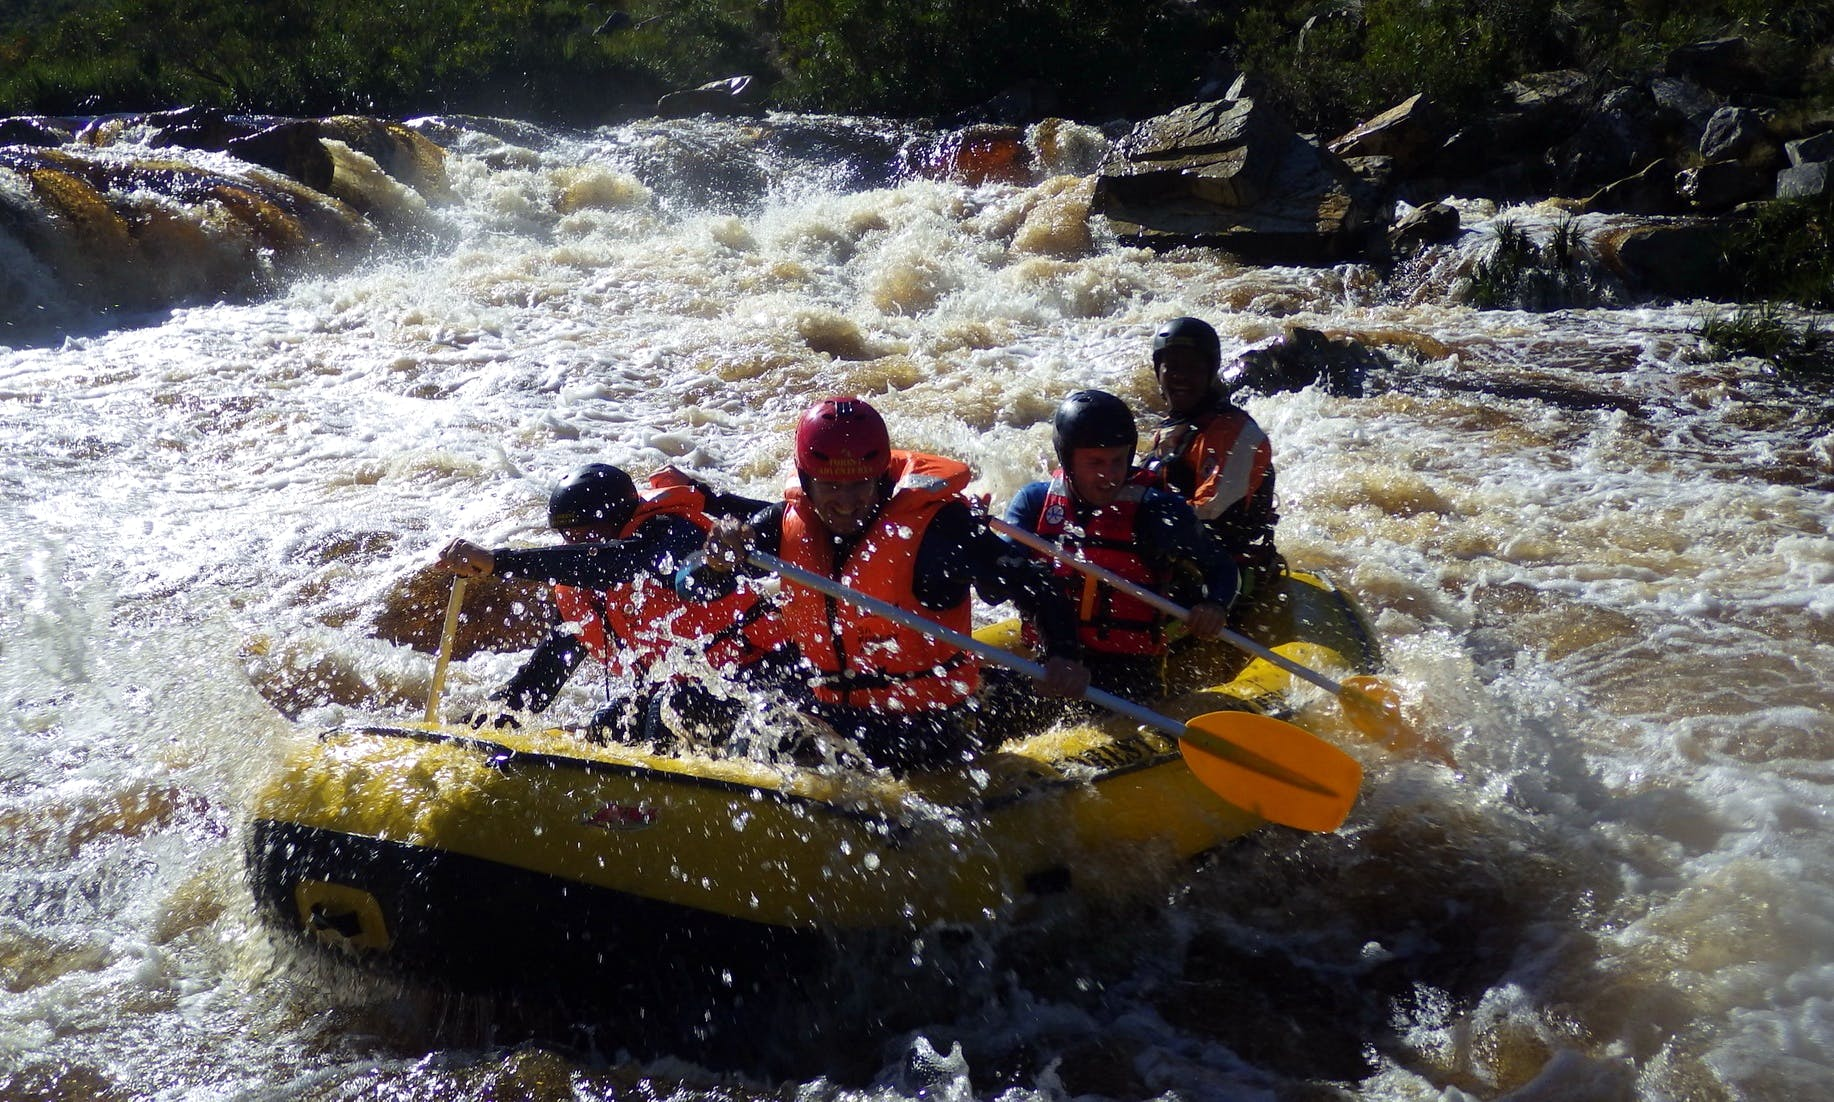 RAFTING in Cape Town, South Africa